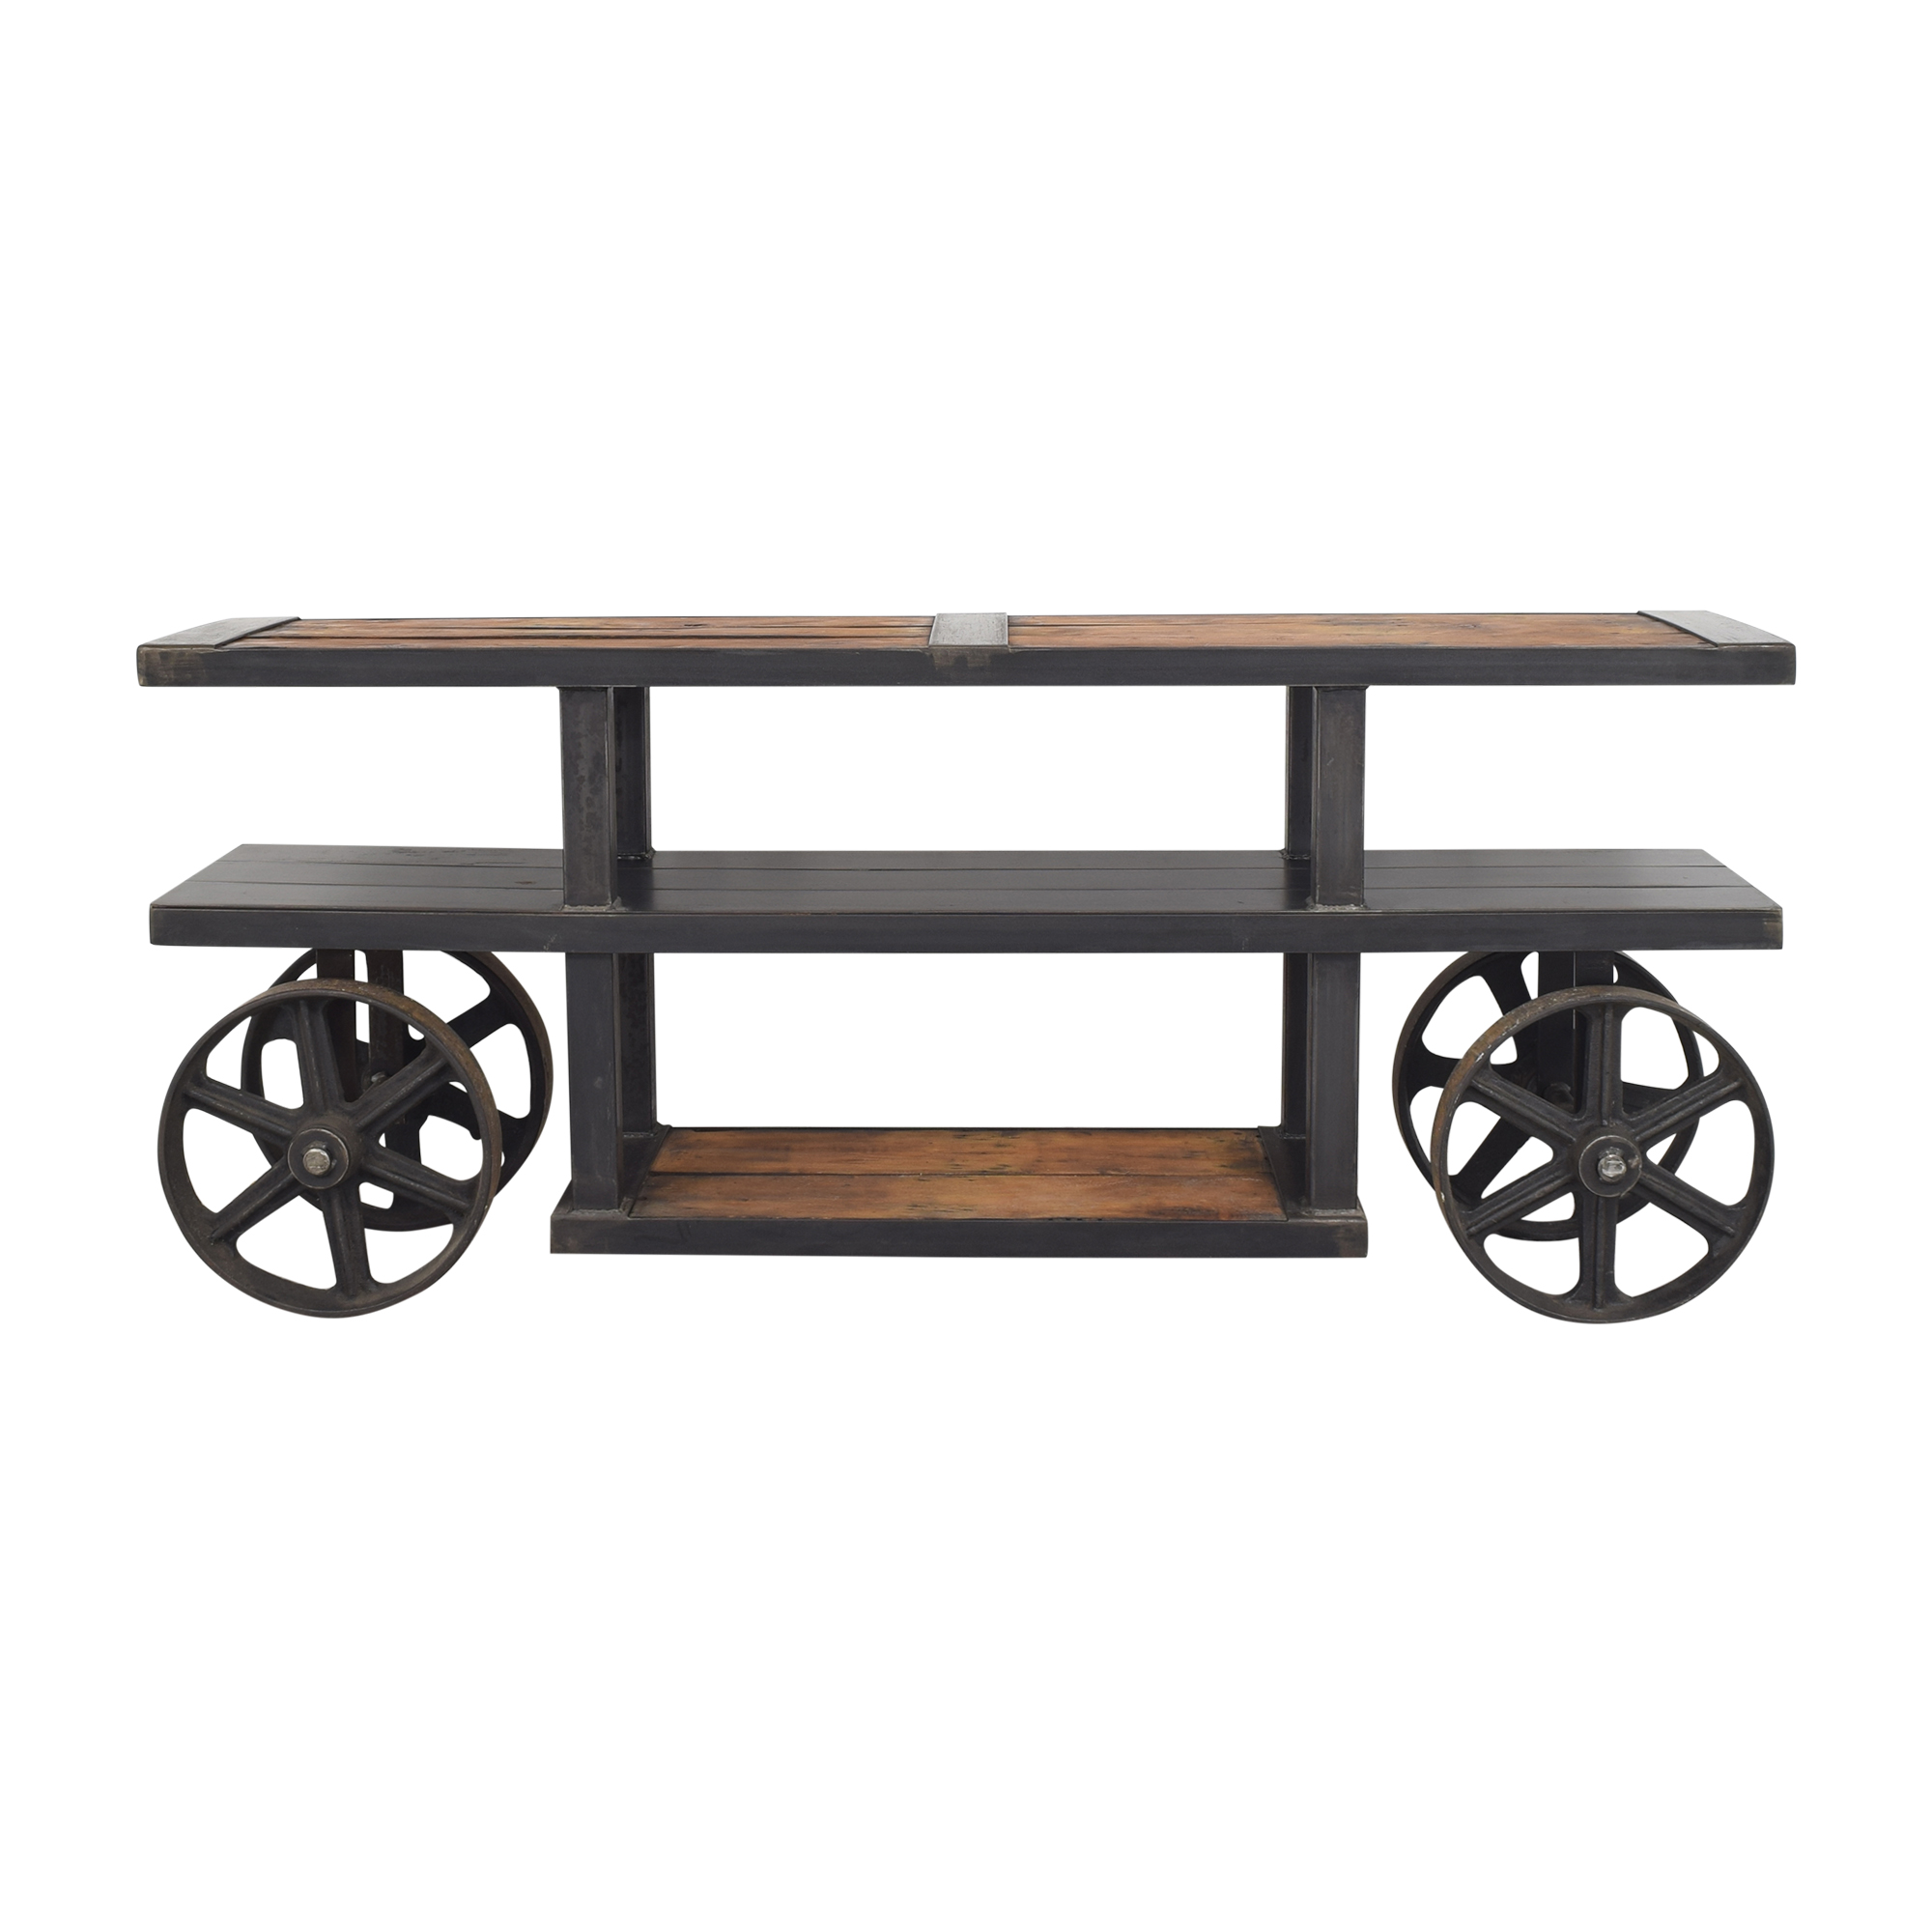 Custom Industrial Media Stand dark gray and brown